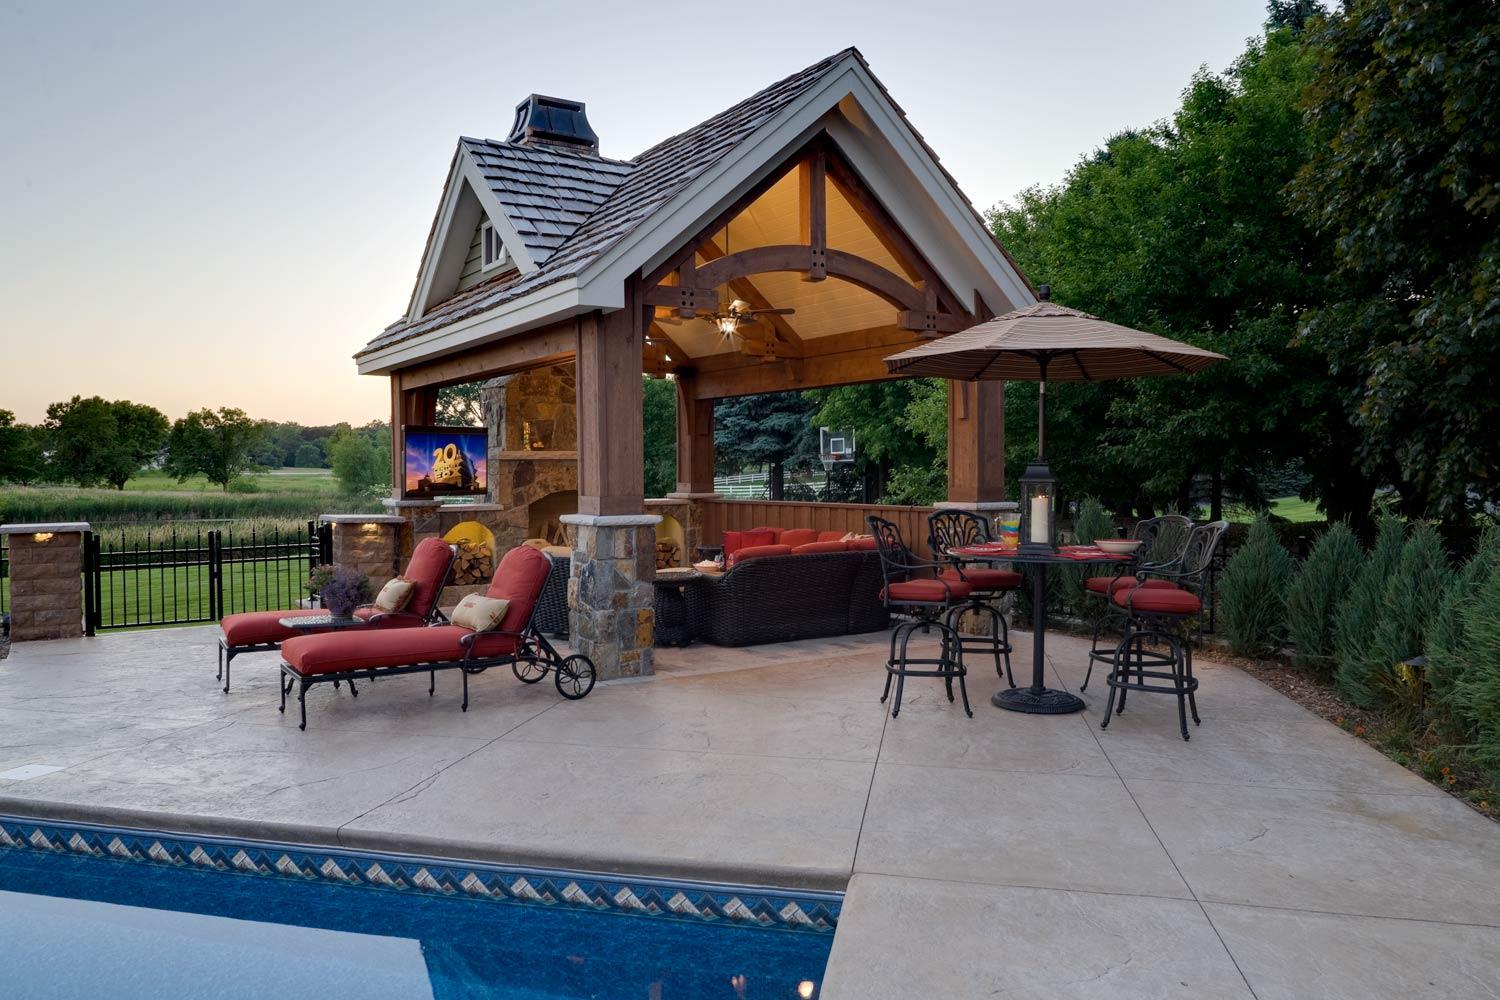 timber frame pool house structure and outdoor living room by a swimming pool